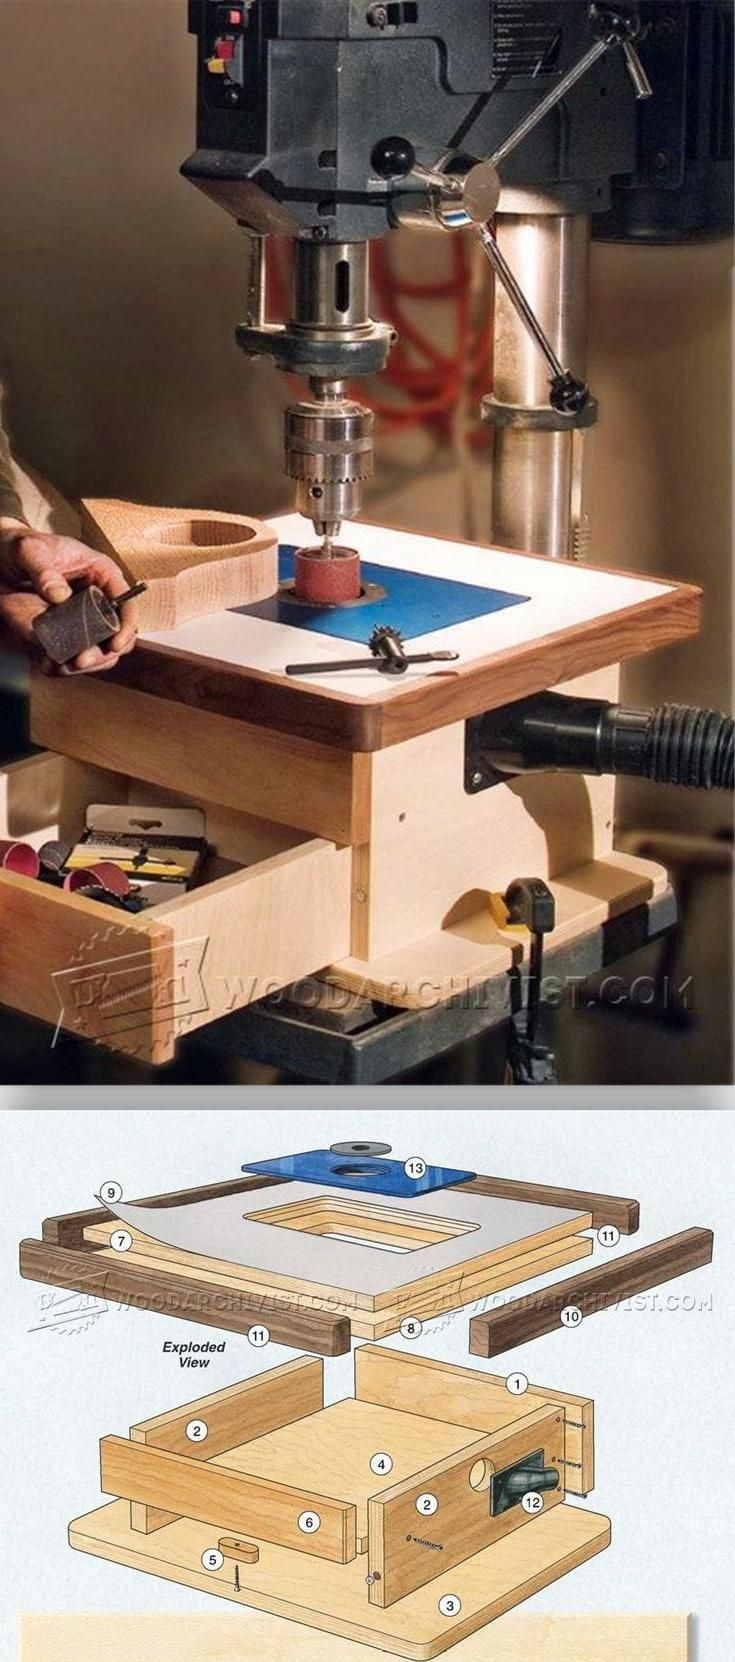 DIY Drill Press Sander - Sanding Tips, Jigs and Techniques | WoodArchivist.com